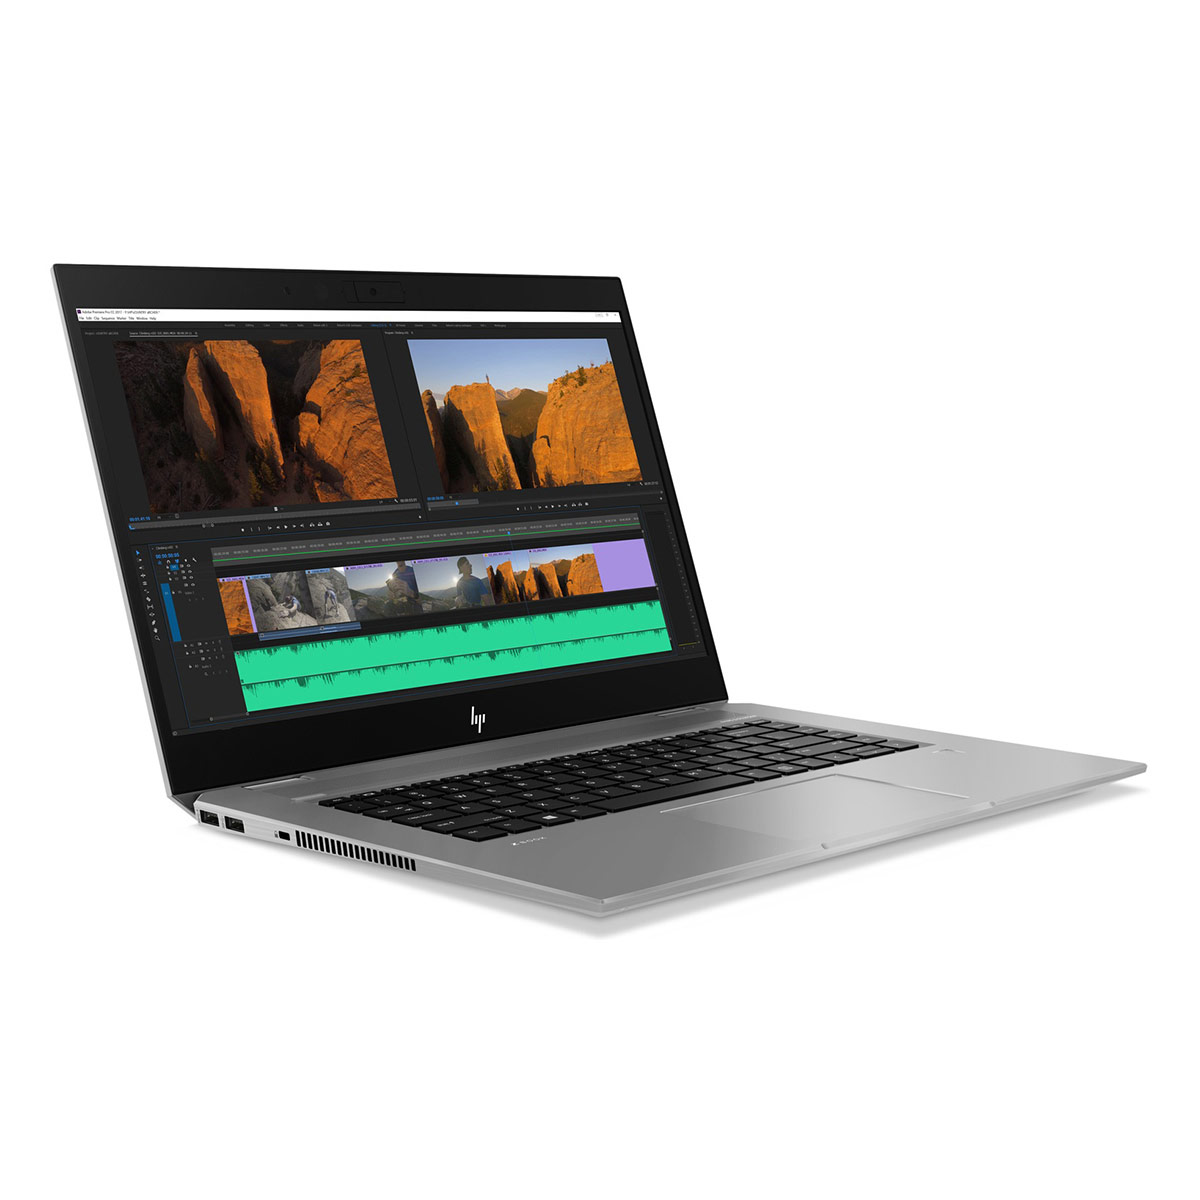 HP ZBook Studio G5 Avid Certified Notebook - i7, 16GB, 512GB, P1000